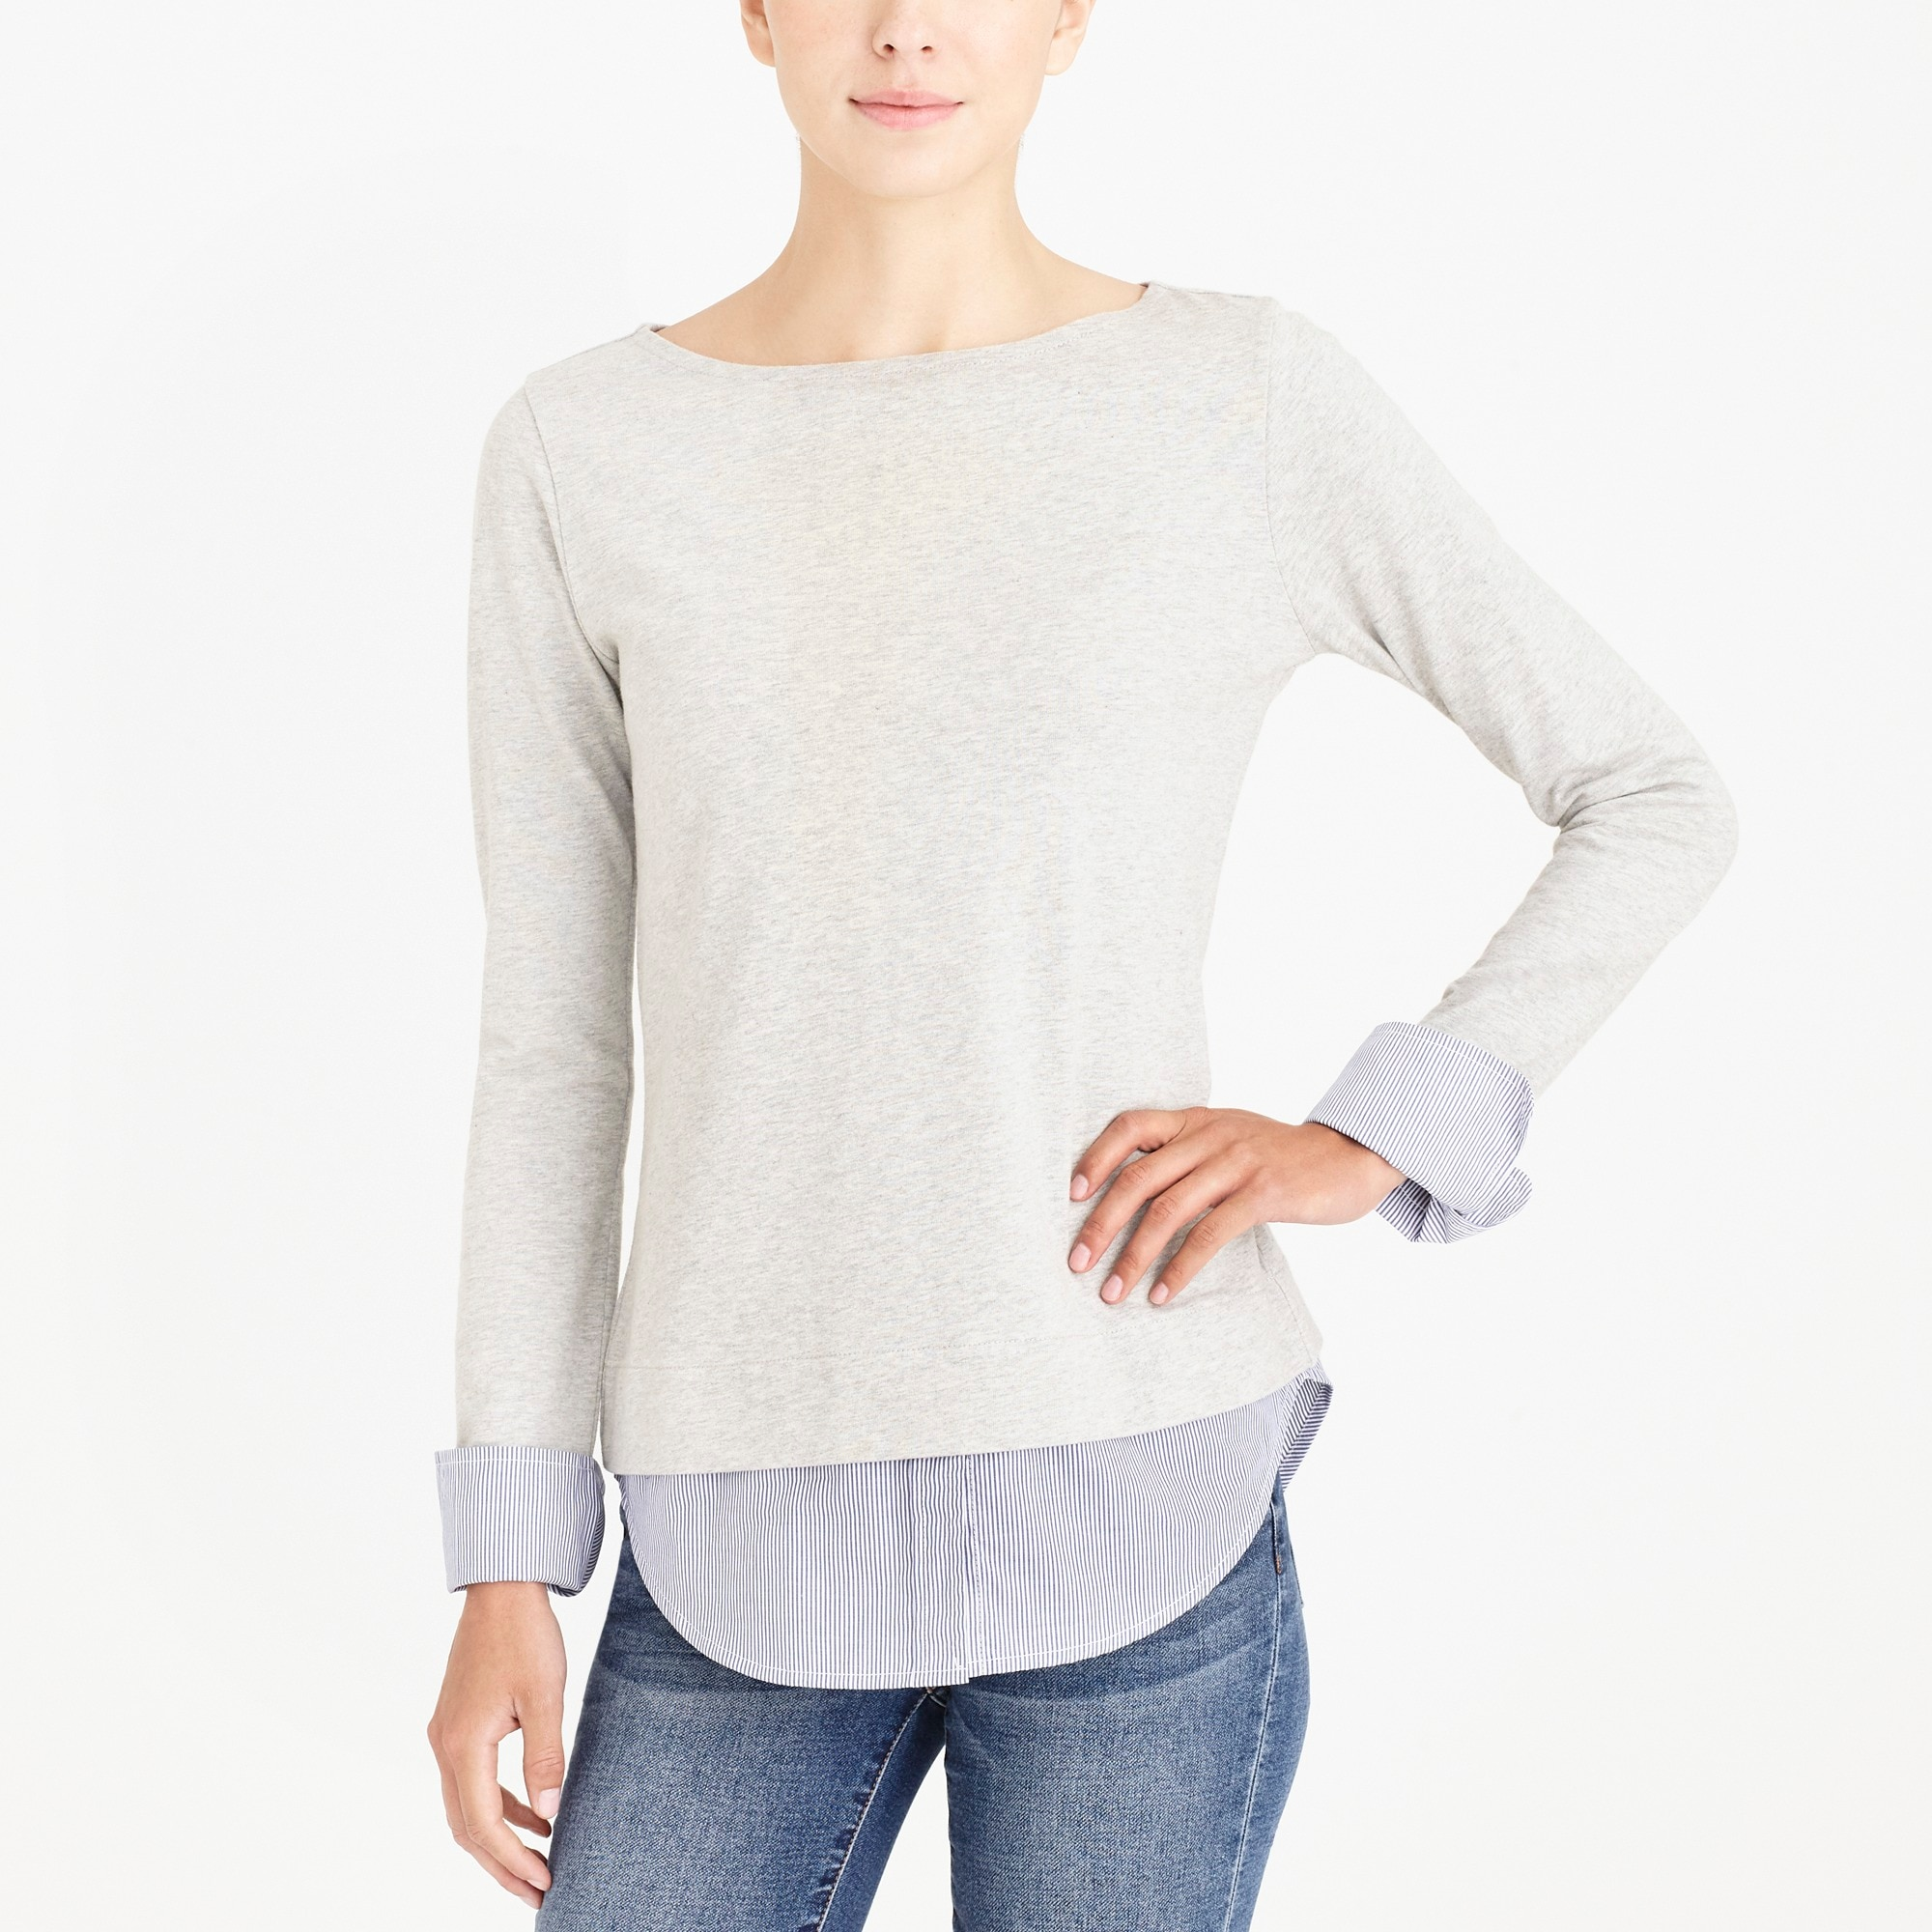 factory womens Cuffed boatneck shirt with woven hem